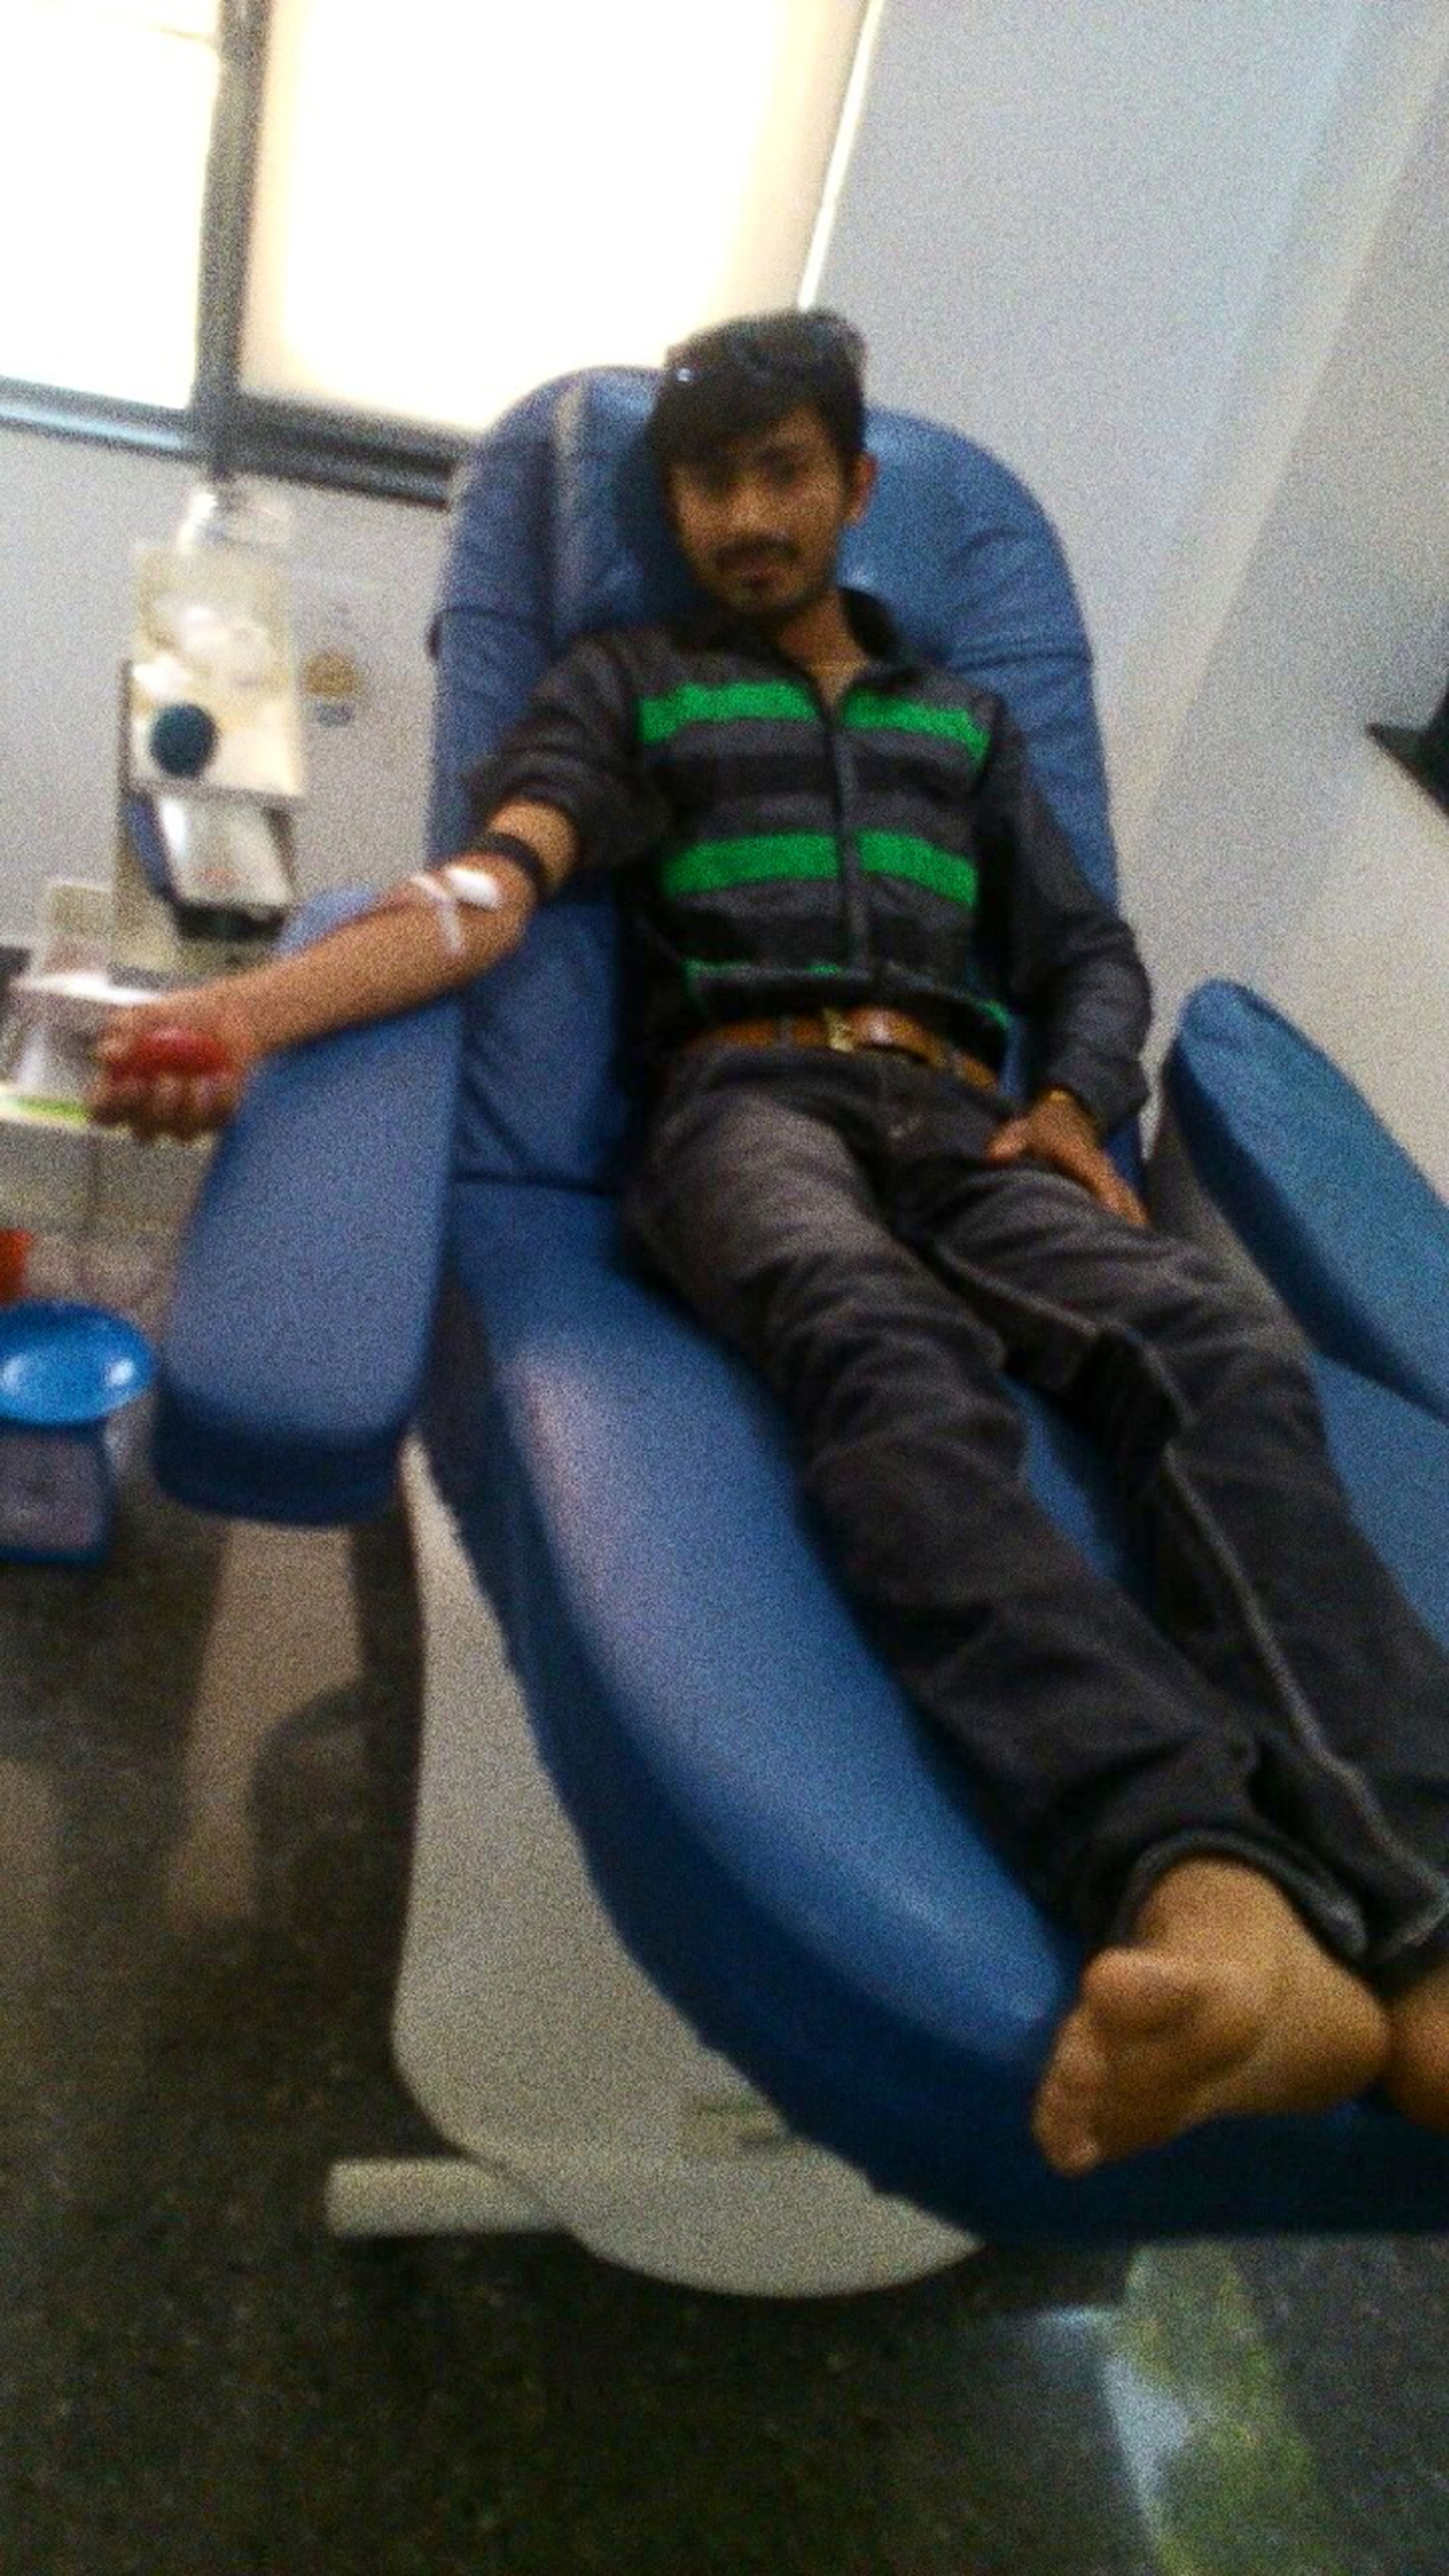 Donating Blood .... Check Up